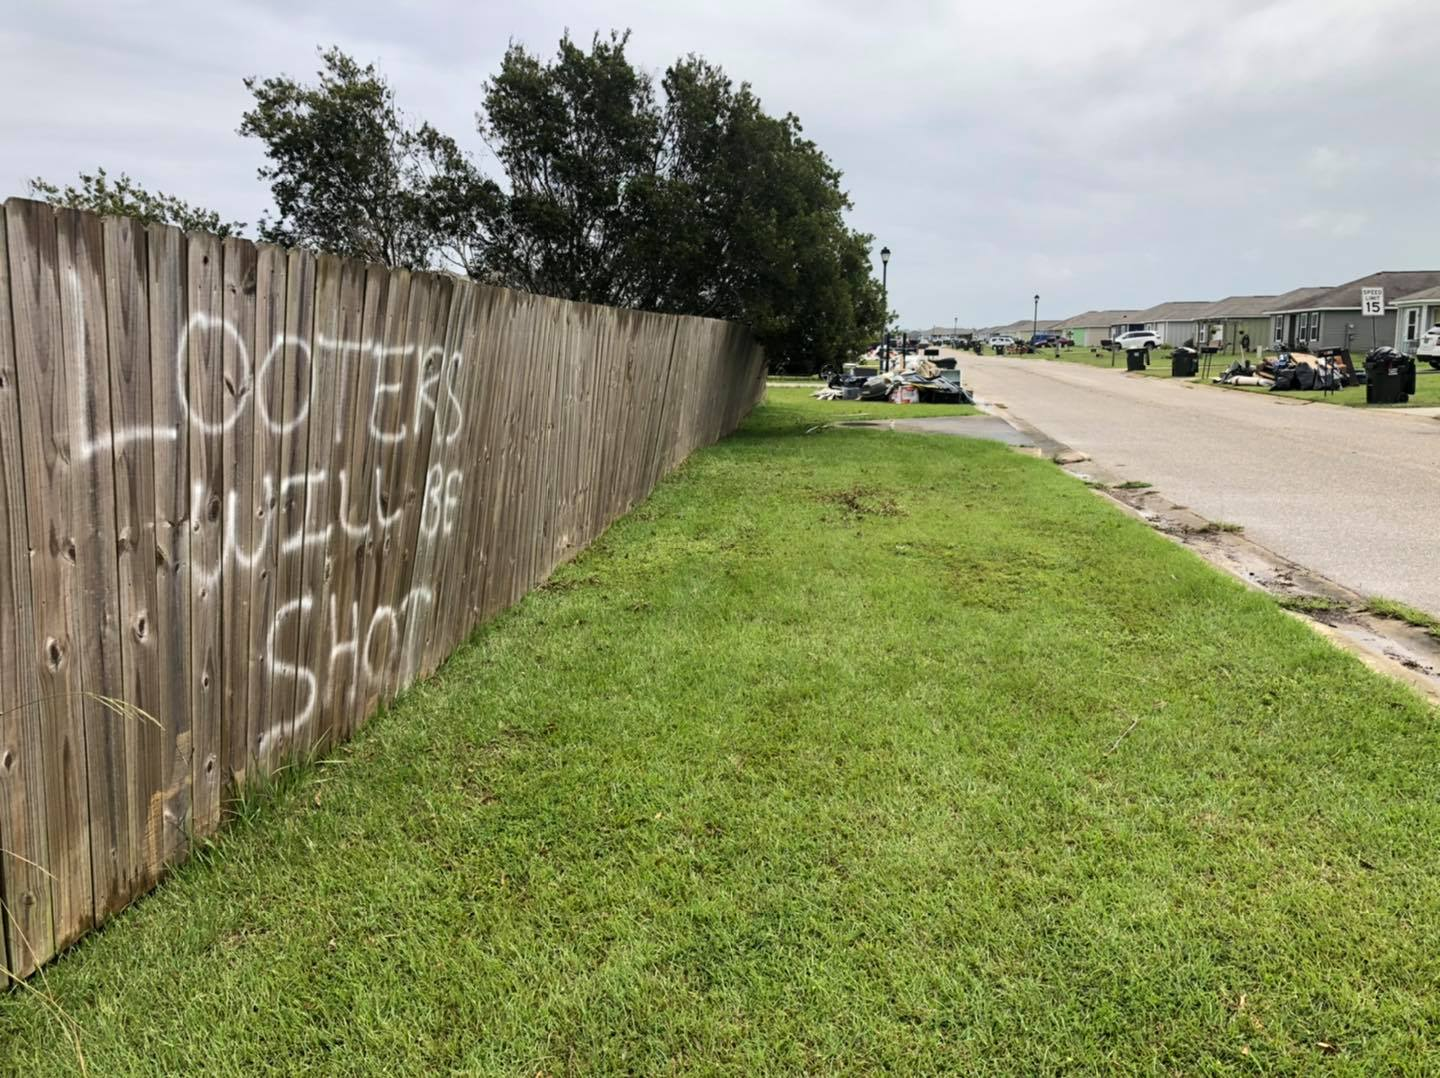 """""""Looters will be shot"""" sign warns in Baldwin County"""